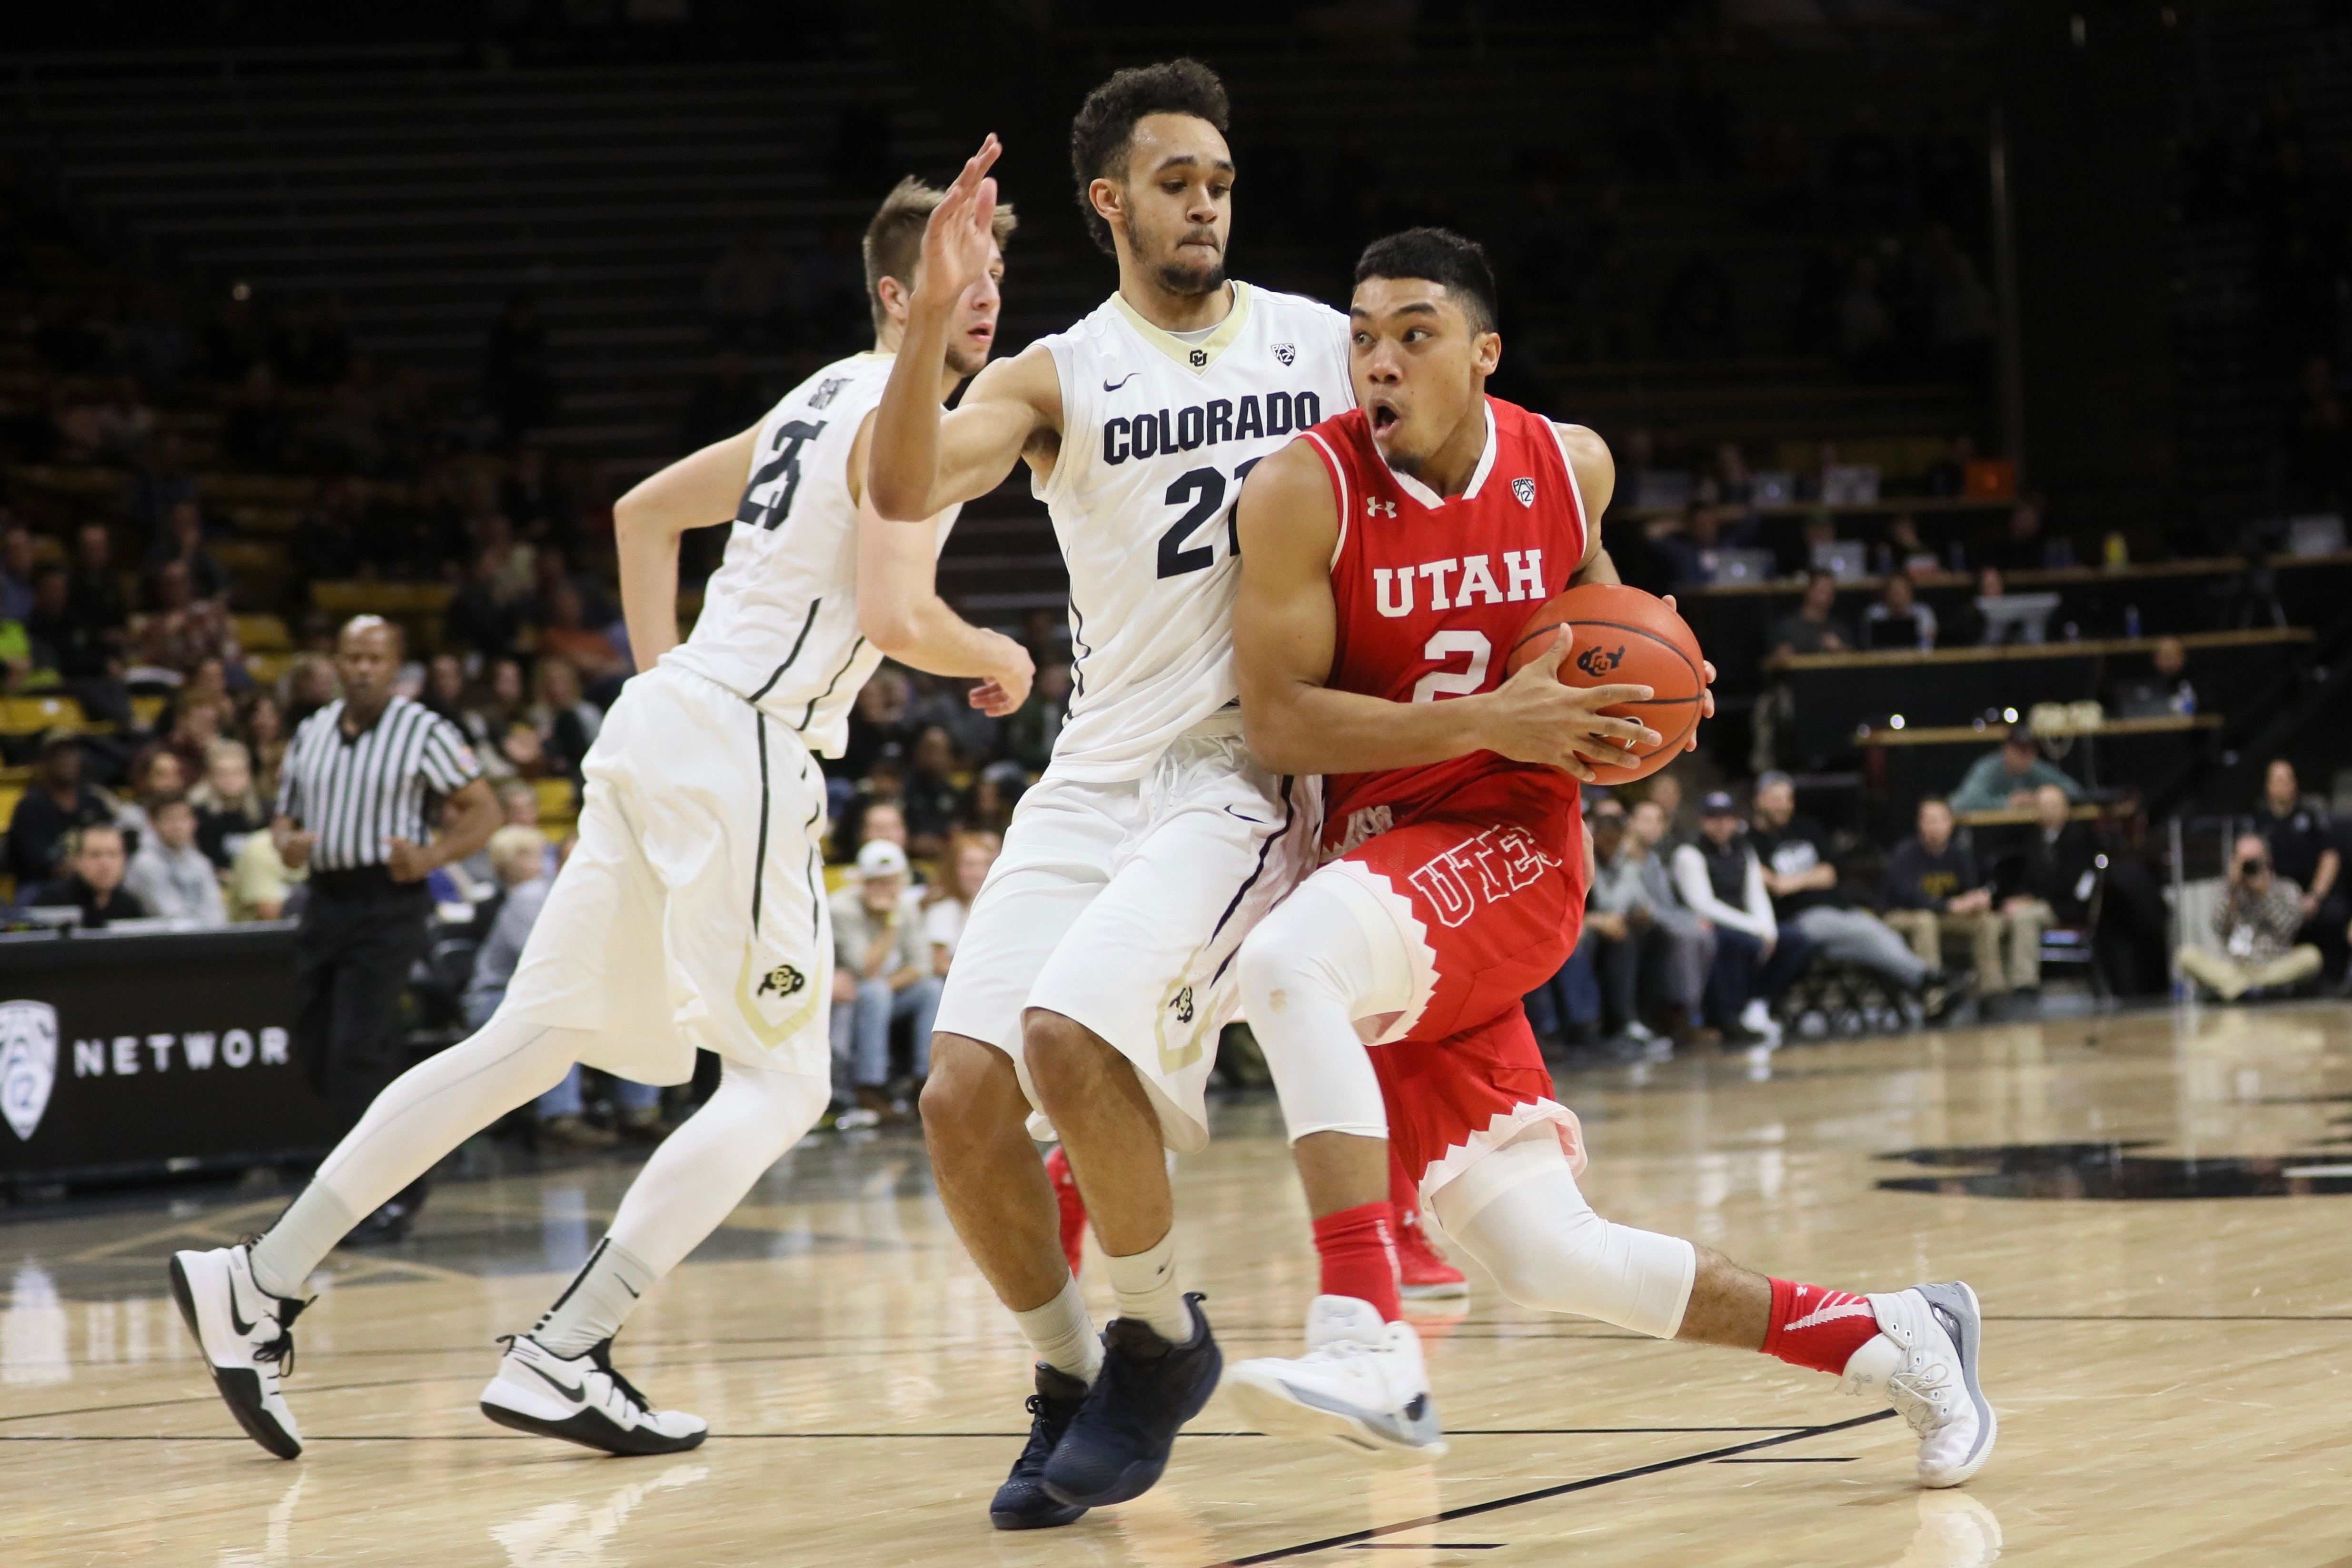 Buffs can't catch up with Utah, lose 86-81